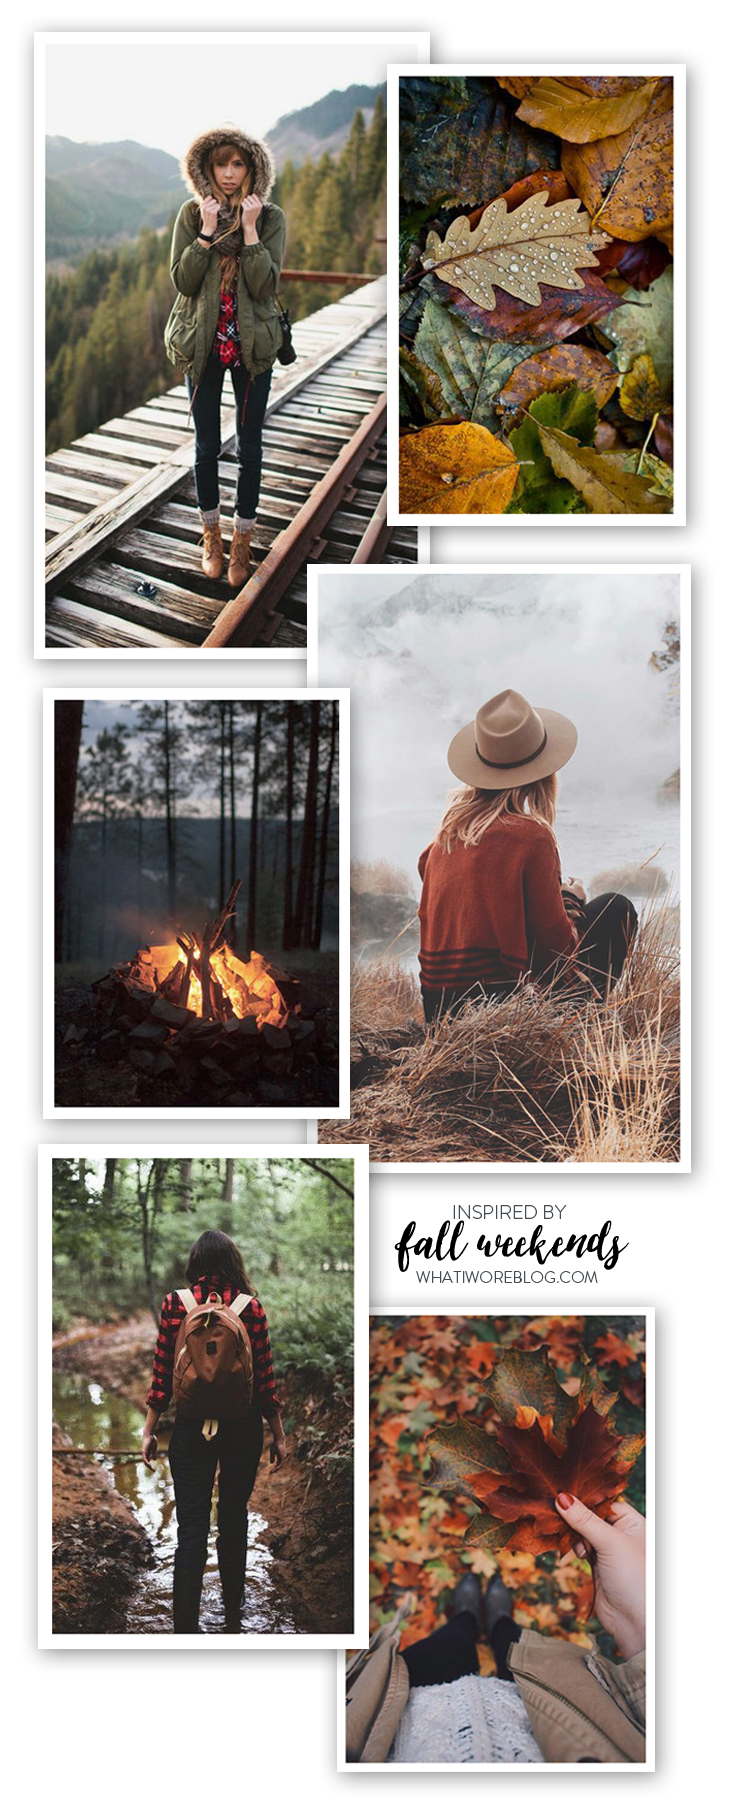 Fall Weekend, Camping Outfit, Woodsy Outfit, Campfire, Fall Leaves, Autumn Leaves, Inspiration Board